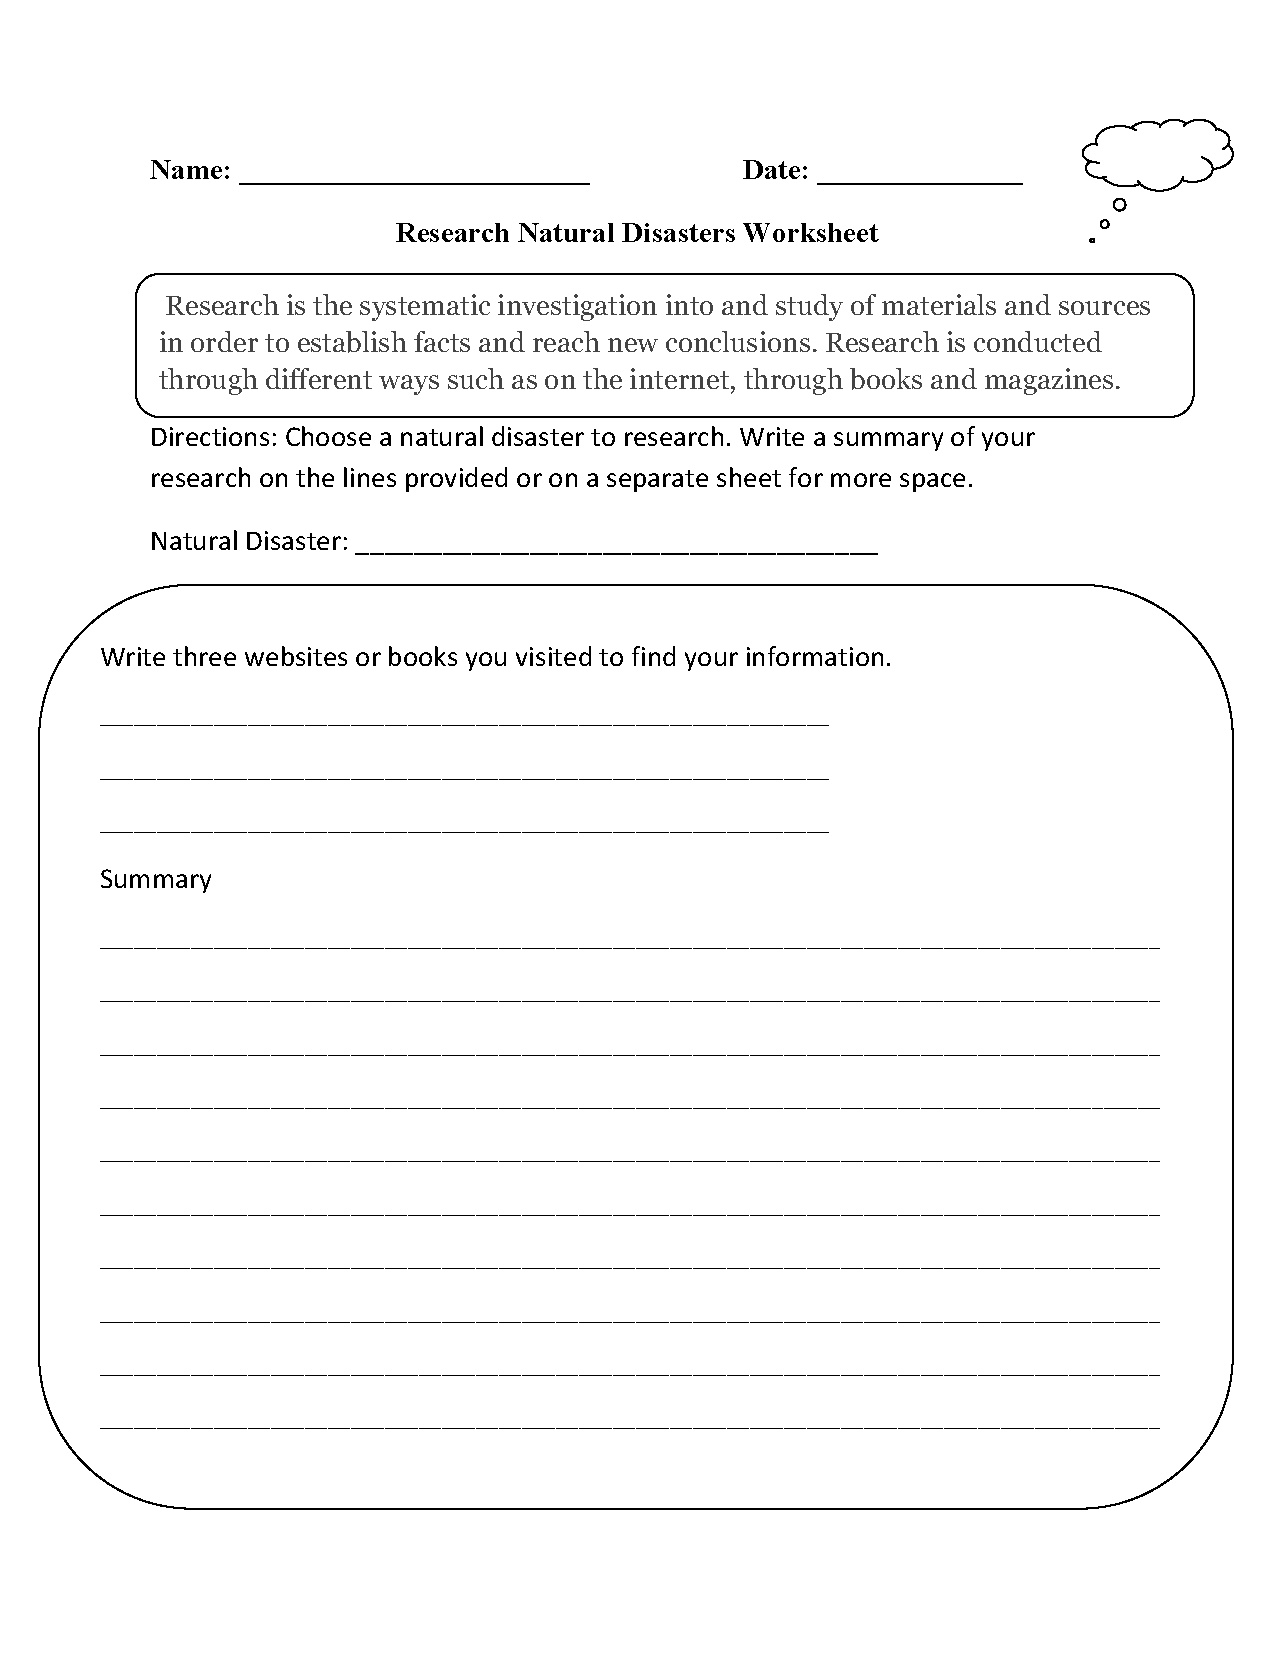 Research Worksheets – Natural Disasters Worksheets